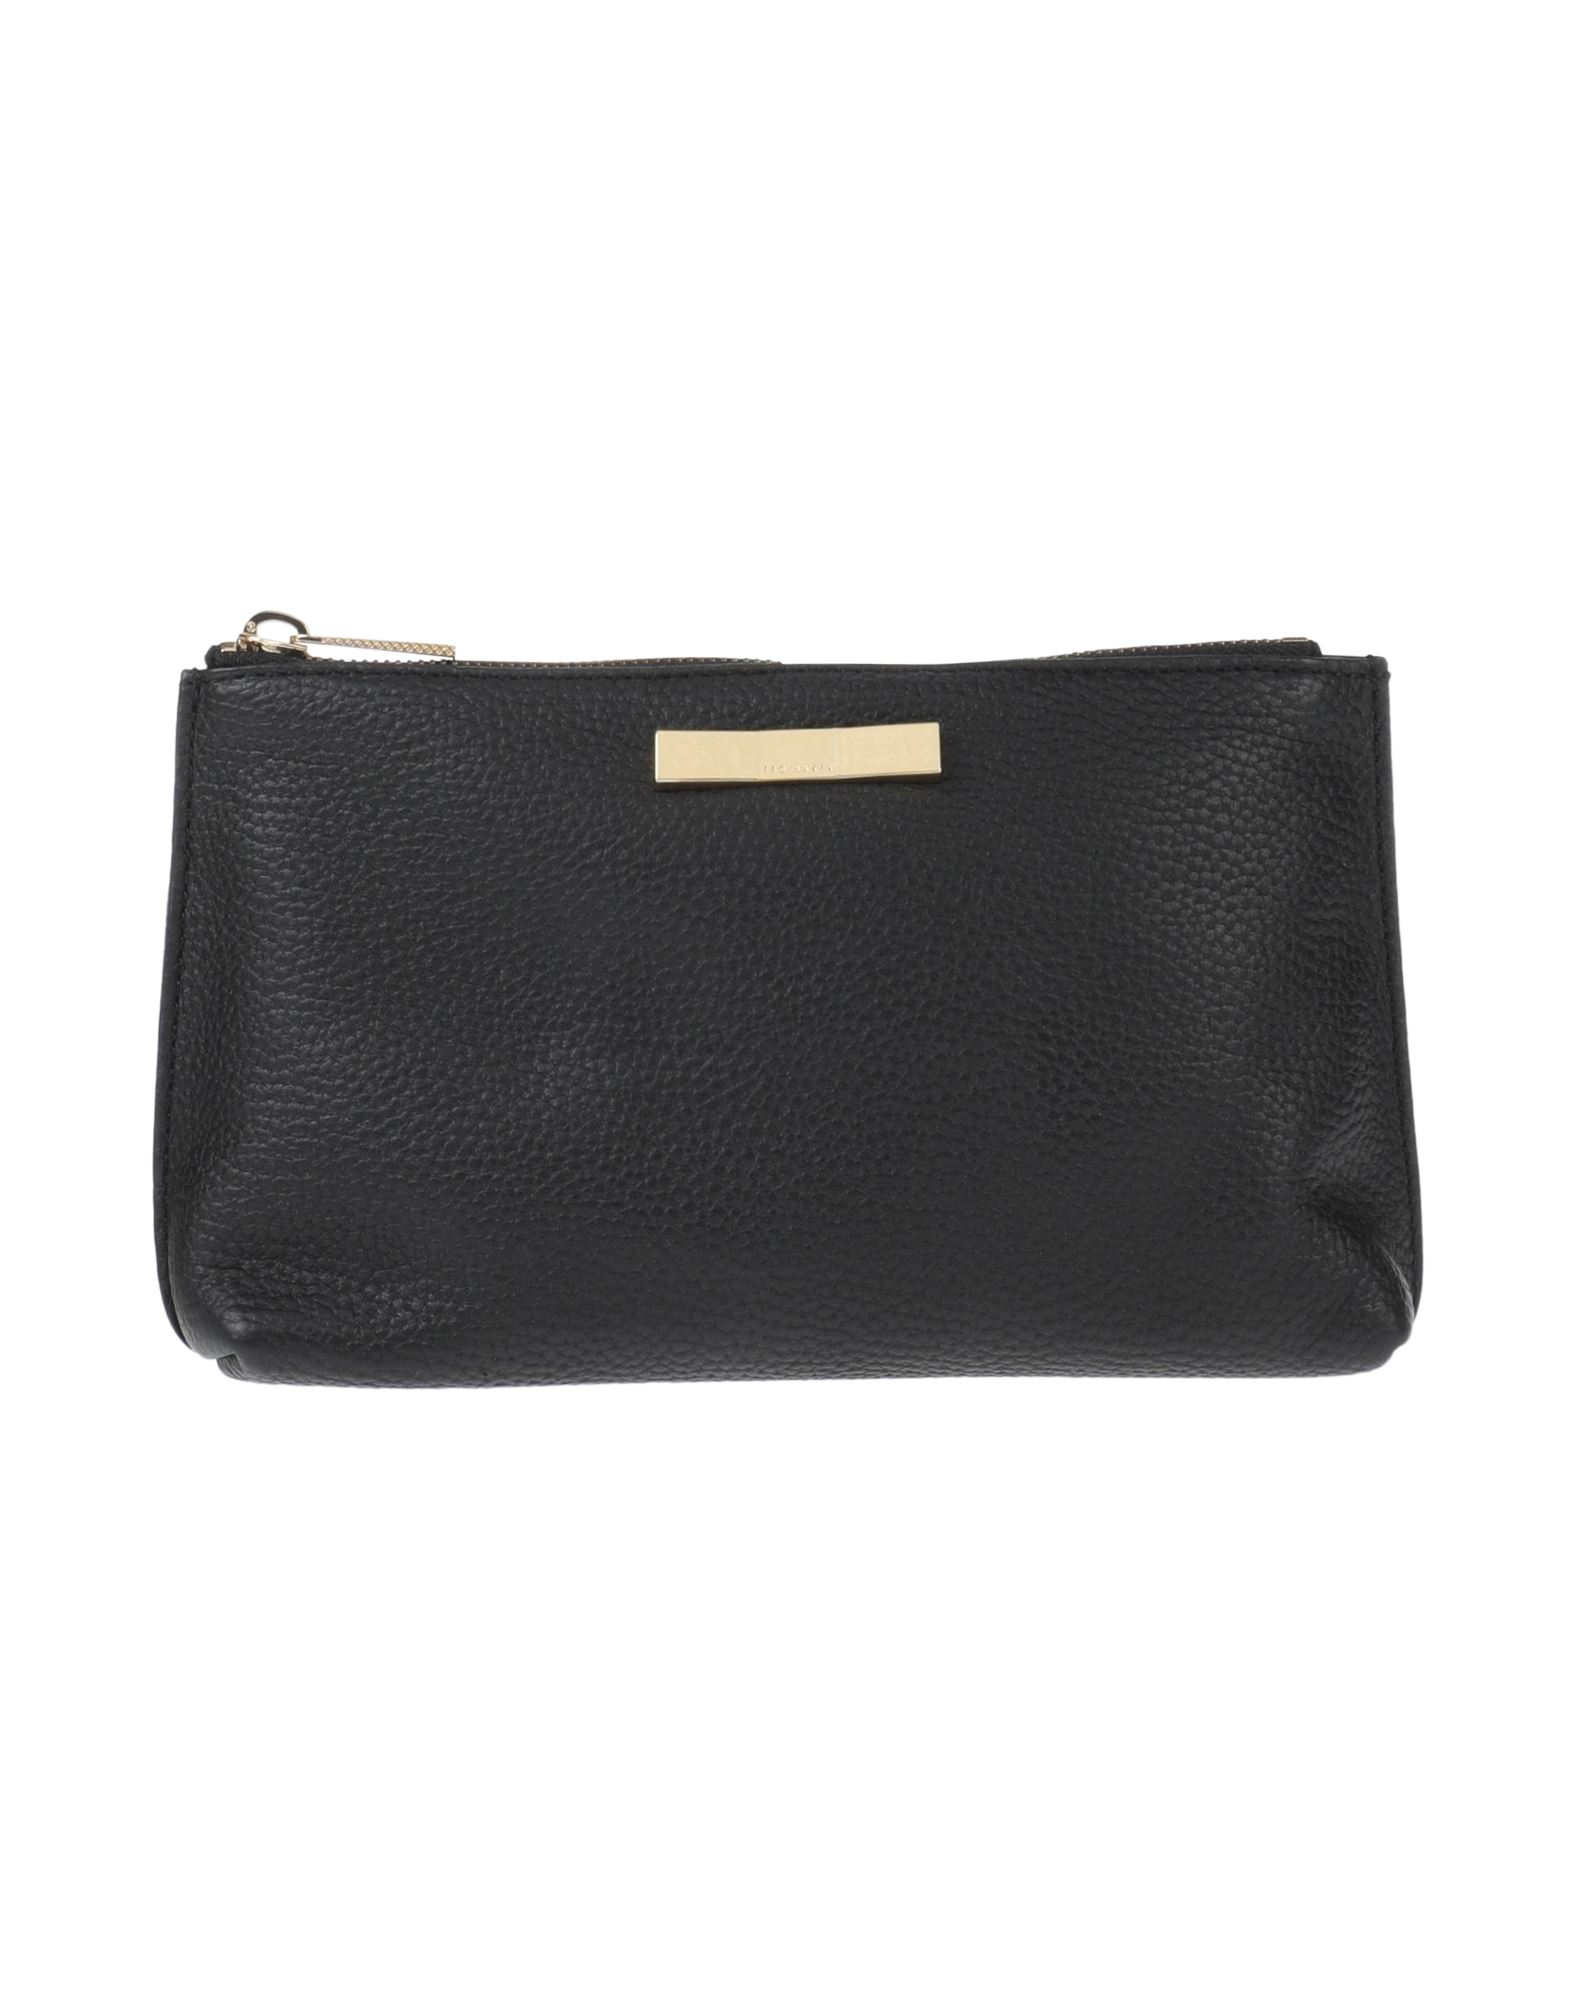 TED BAKER Handbags - Item 45550620